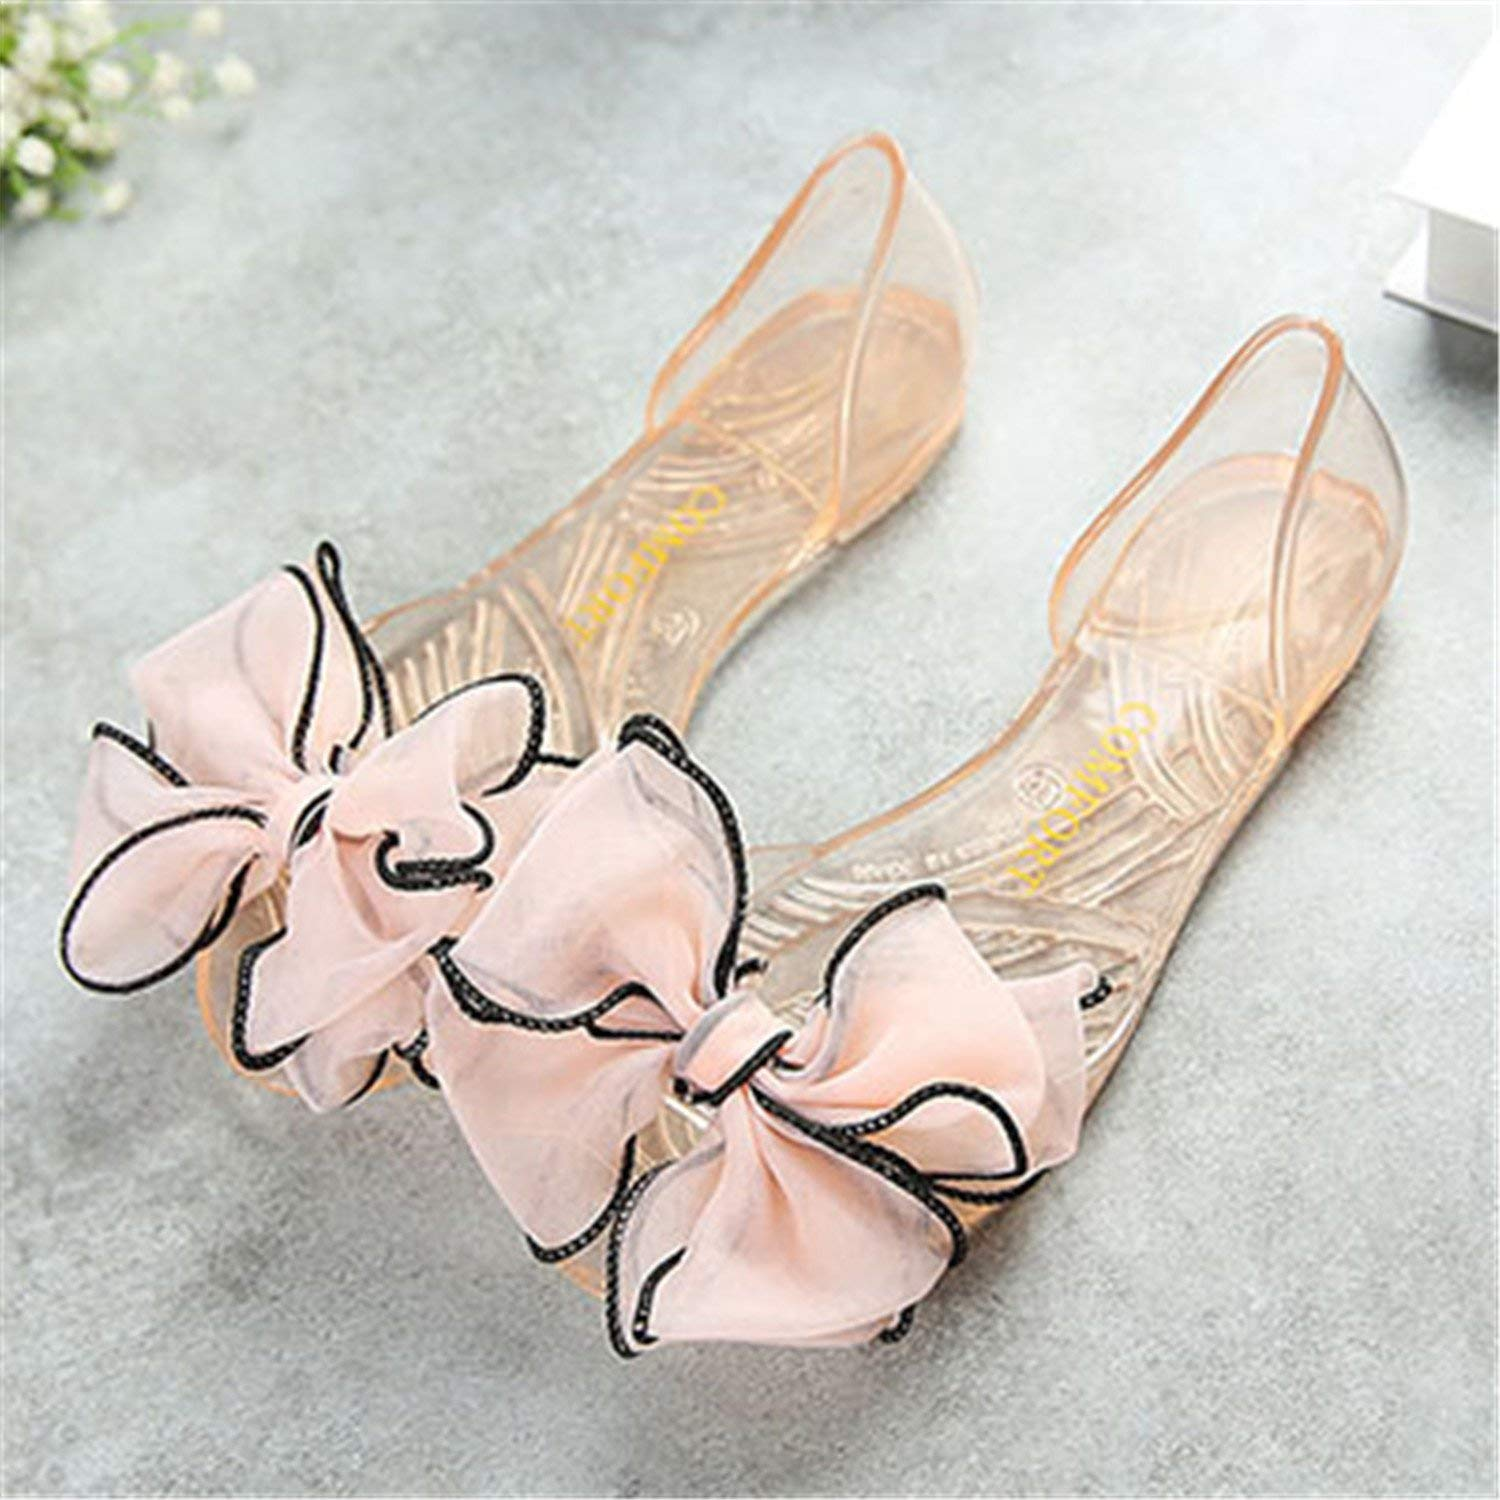 a063542fcdc239 Get Quotations · Women Jelly Sandals New Summer Satin Flower Bow Tie  Fashion Peep Toe Shoes Woman String Bead